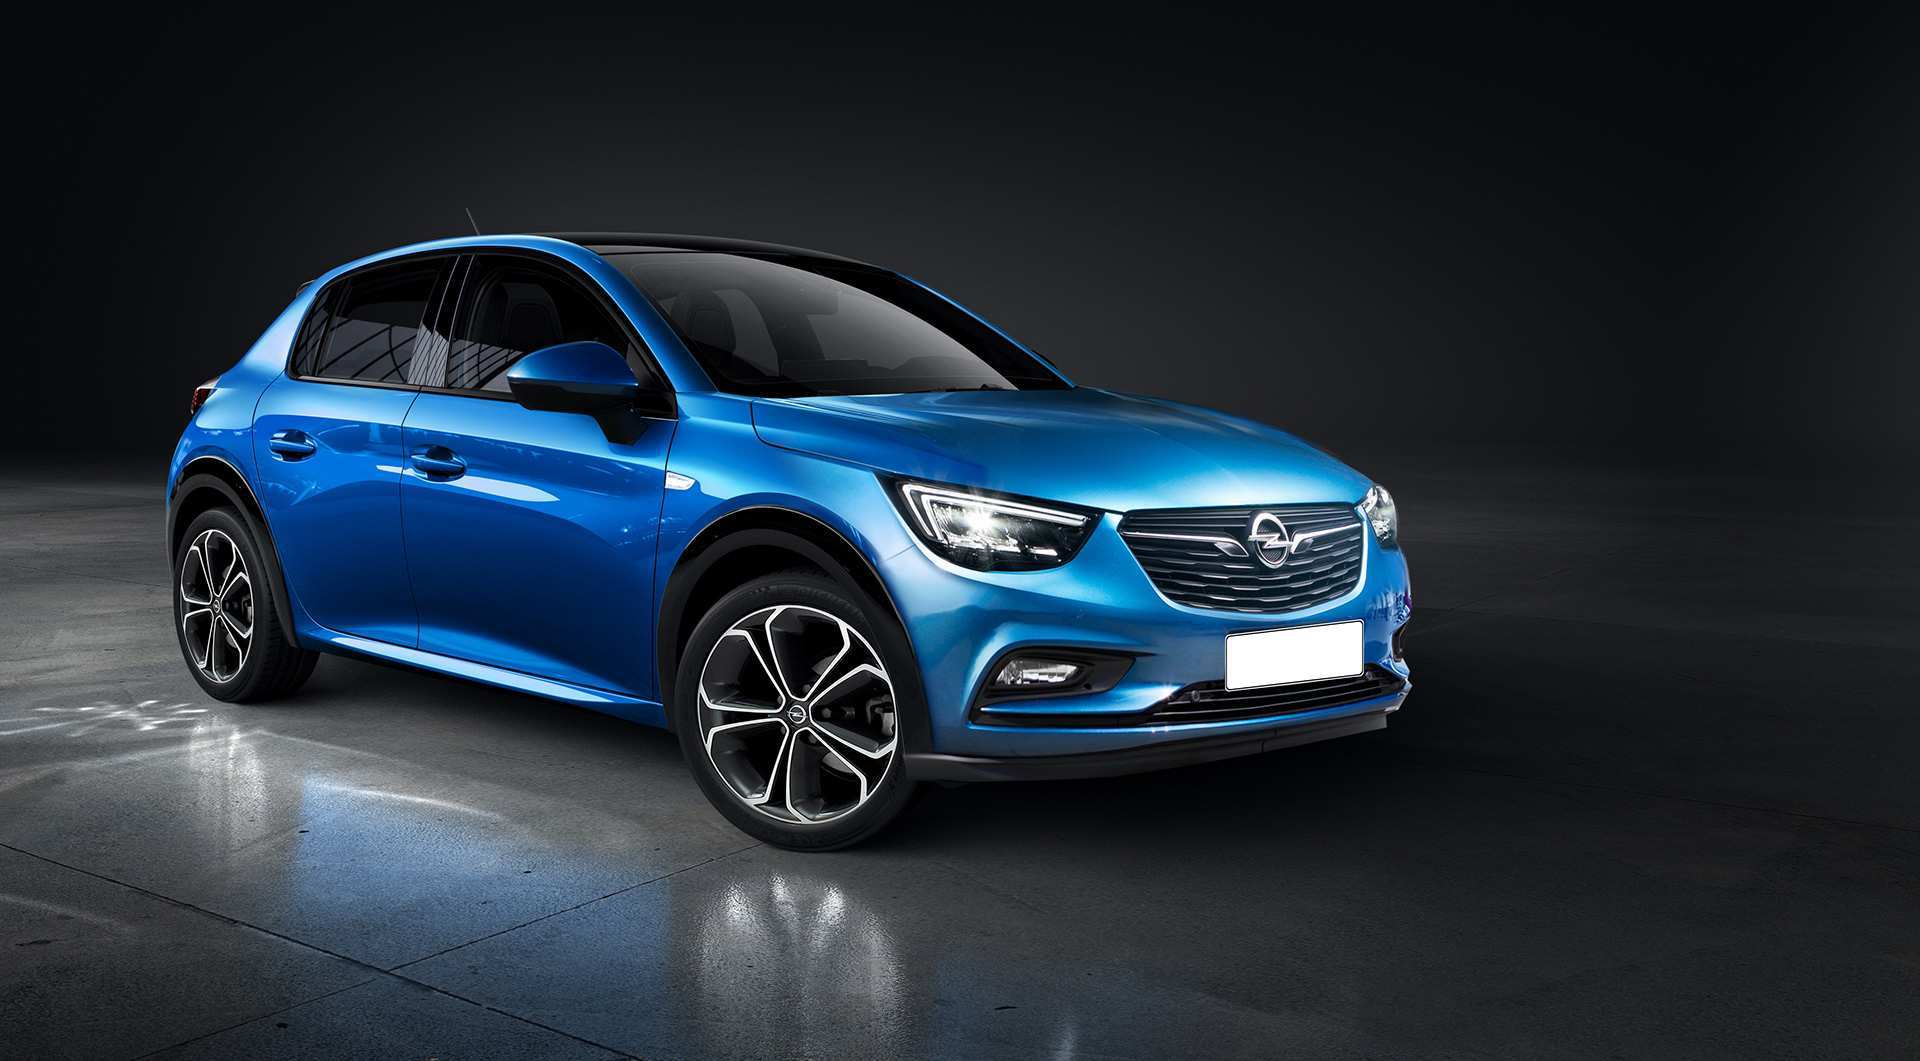 87 All New Opel Corsa 2020 Rendering Concept And Review